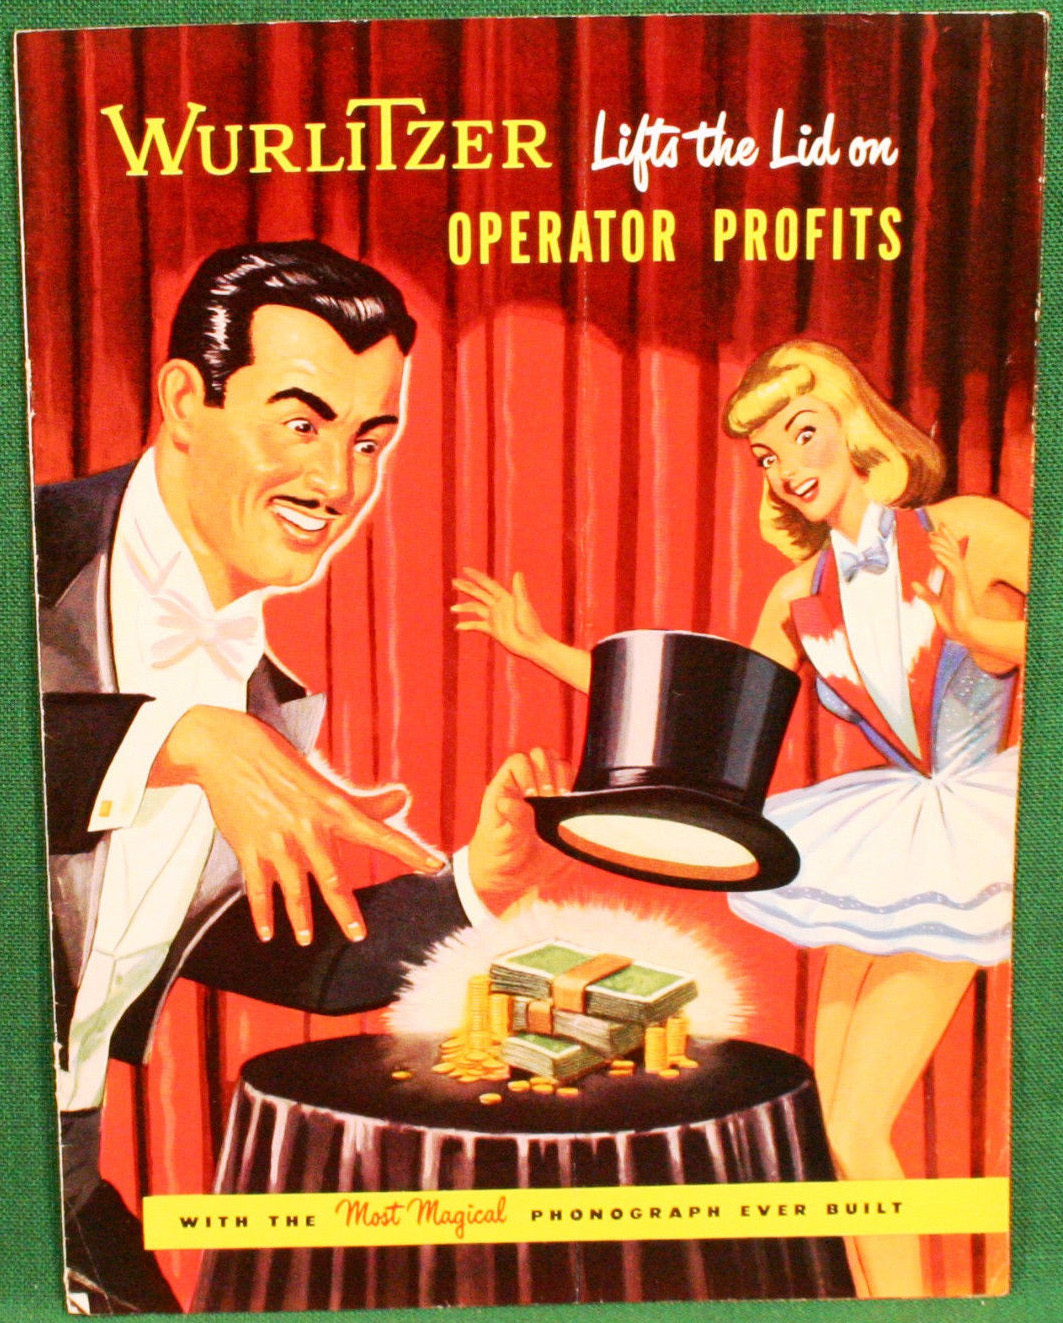 Wurlitzer lifts the lid on operator profits, sales catalog (c1950).jpg